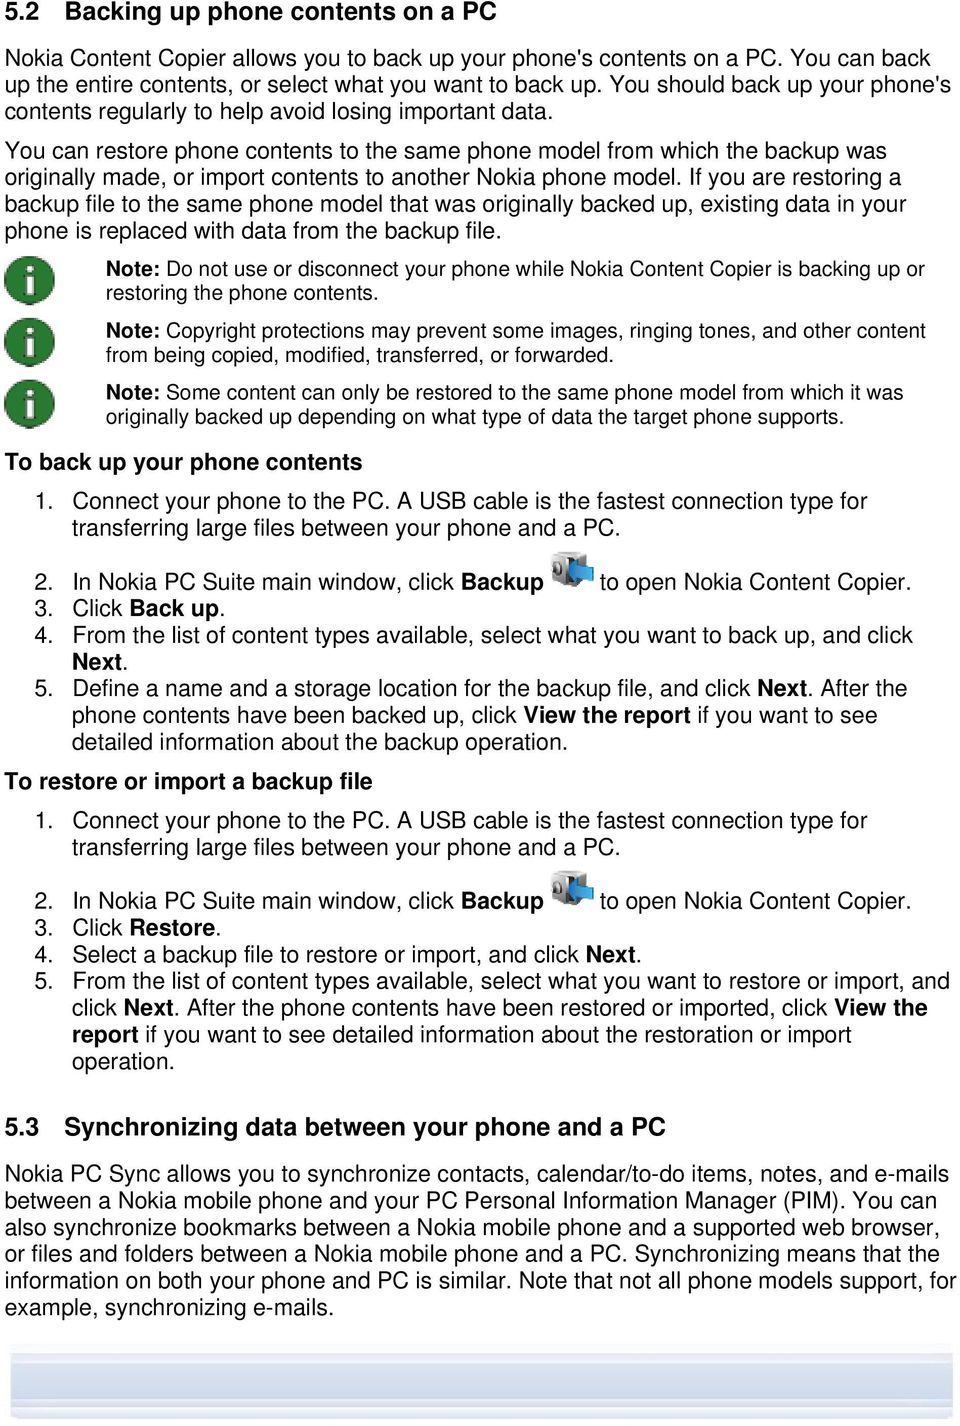 You can restore phone contents to the same phone model from which the backup was originally made, or import contents to another Nokia phone model.